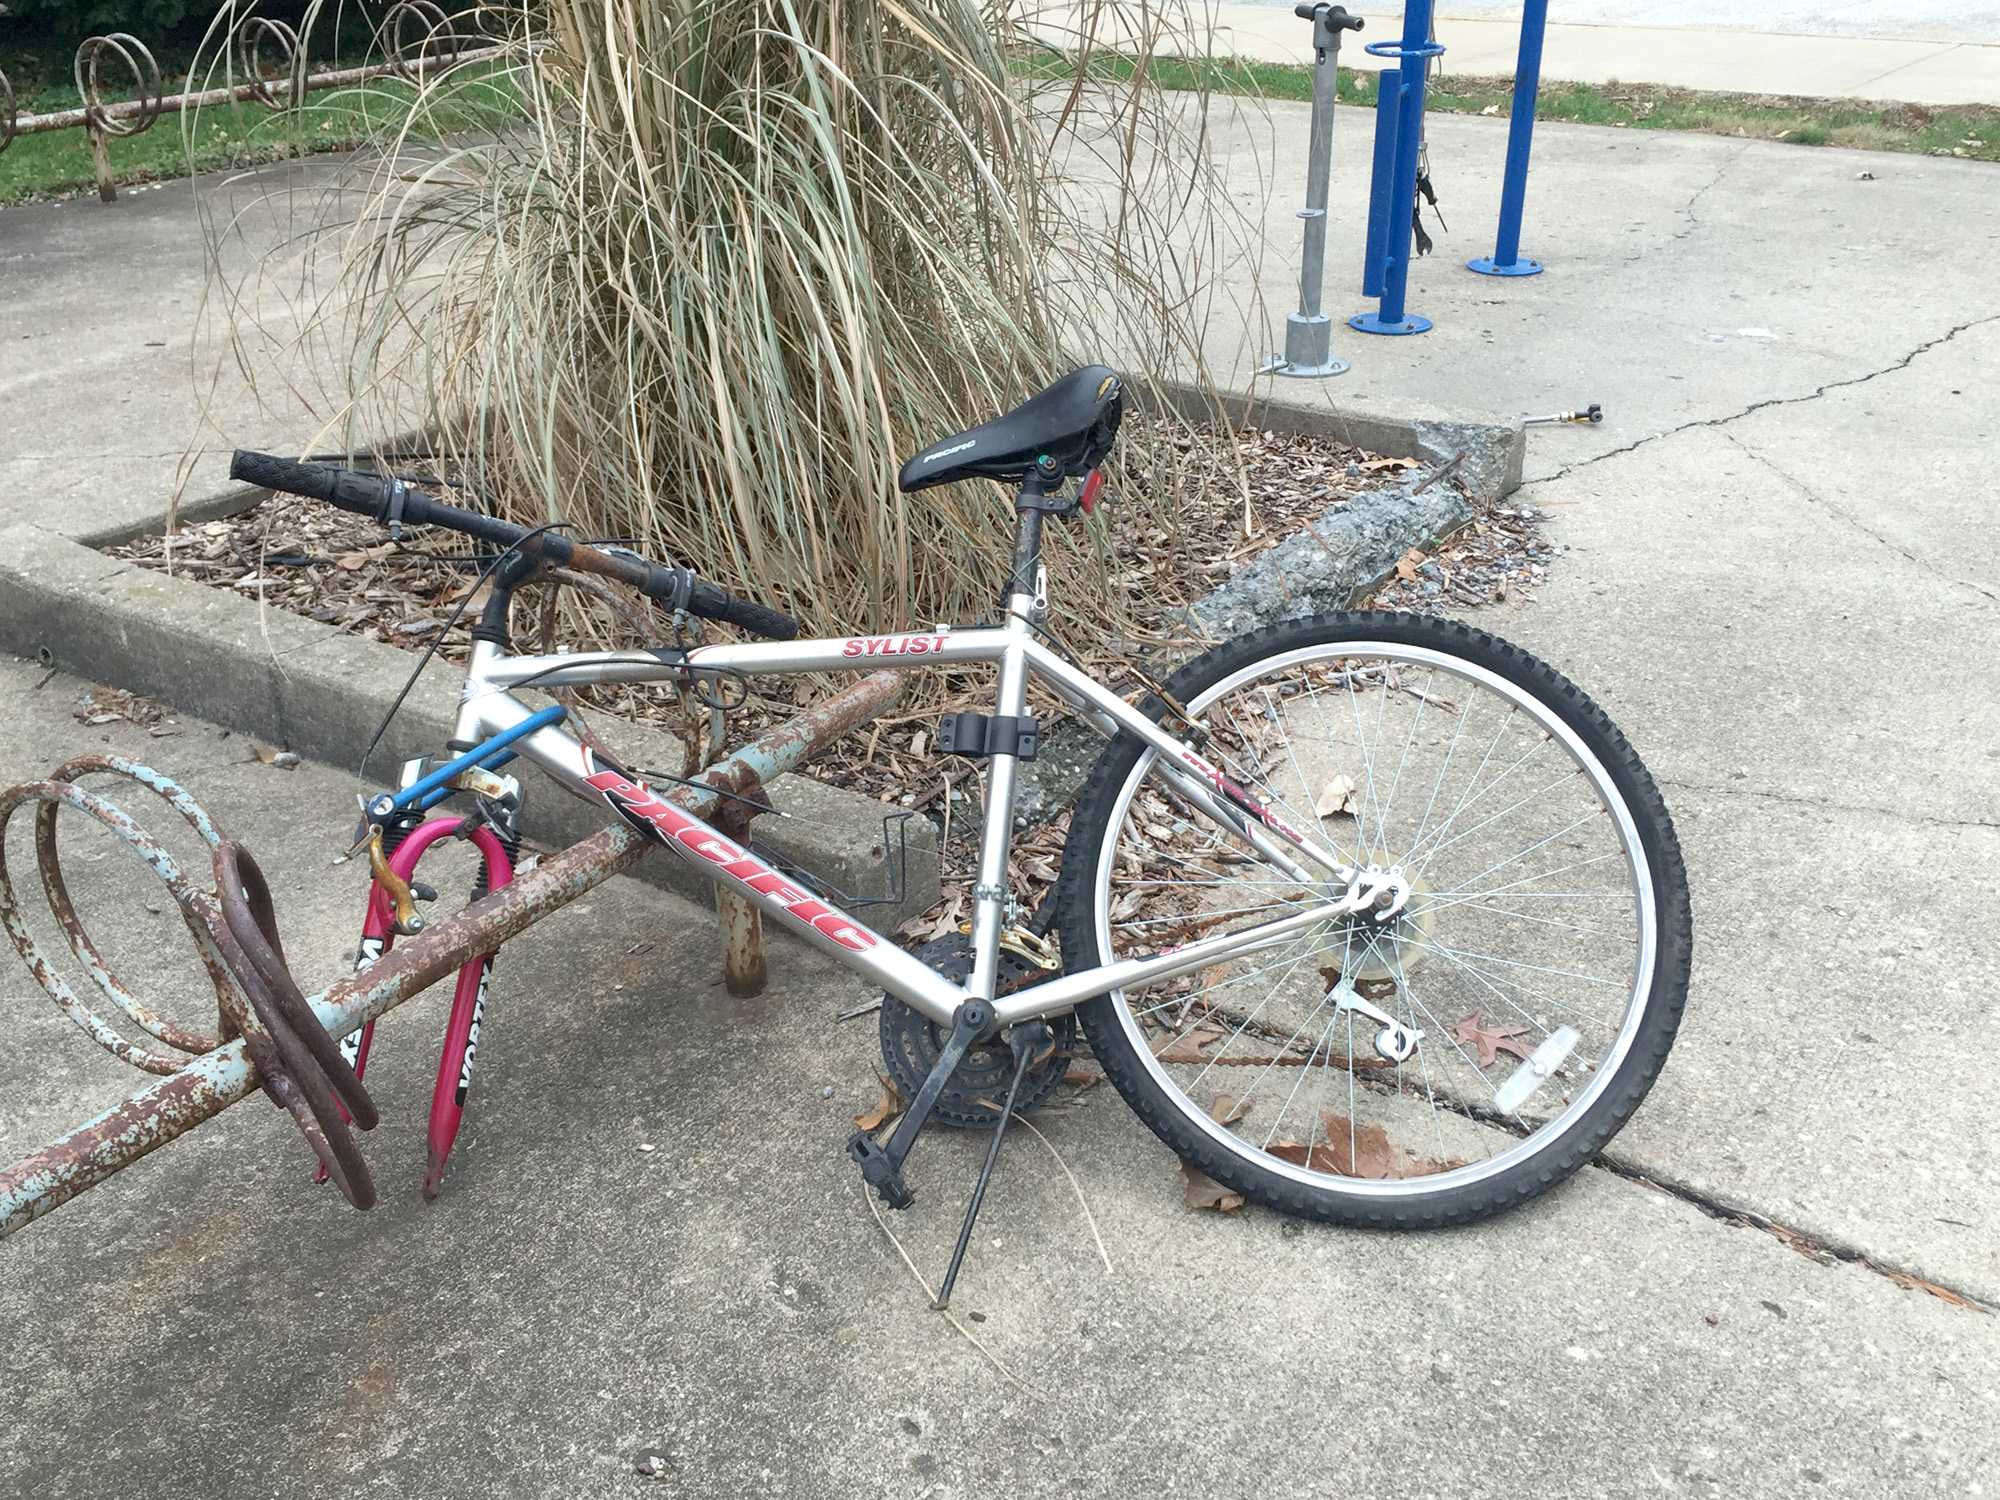 A bike locked on the rack north of the Henry Administration Building has rusted gears and handlebars and is missing a wheel. Parking department employees tag bikes like these before taking them to the Campus Bike Center.